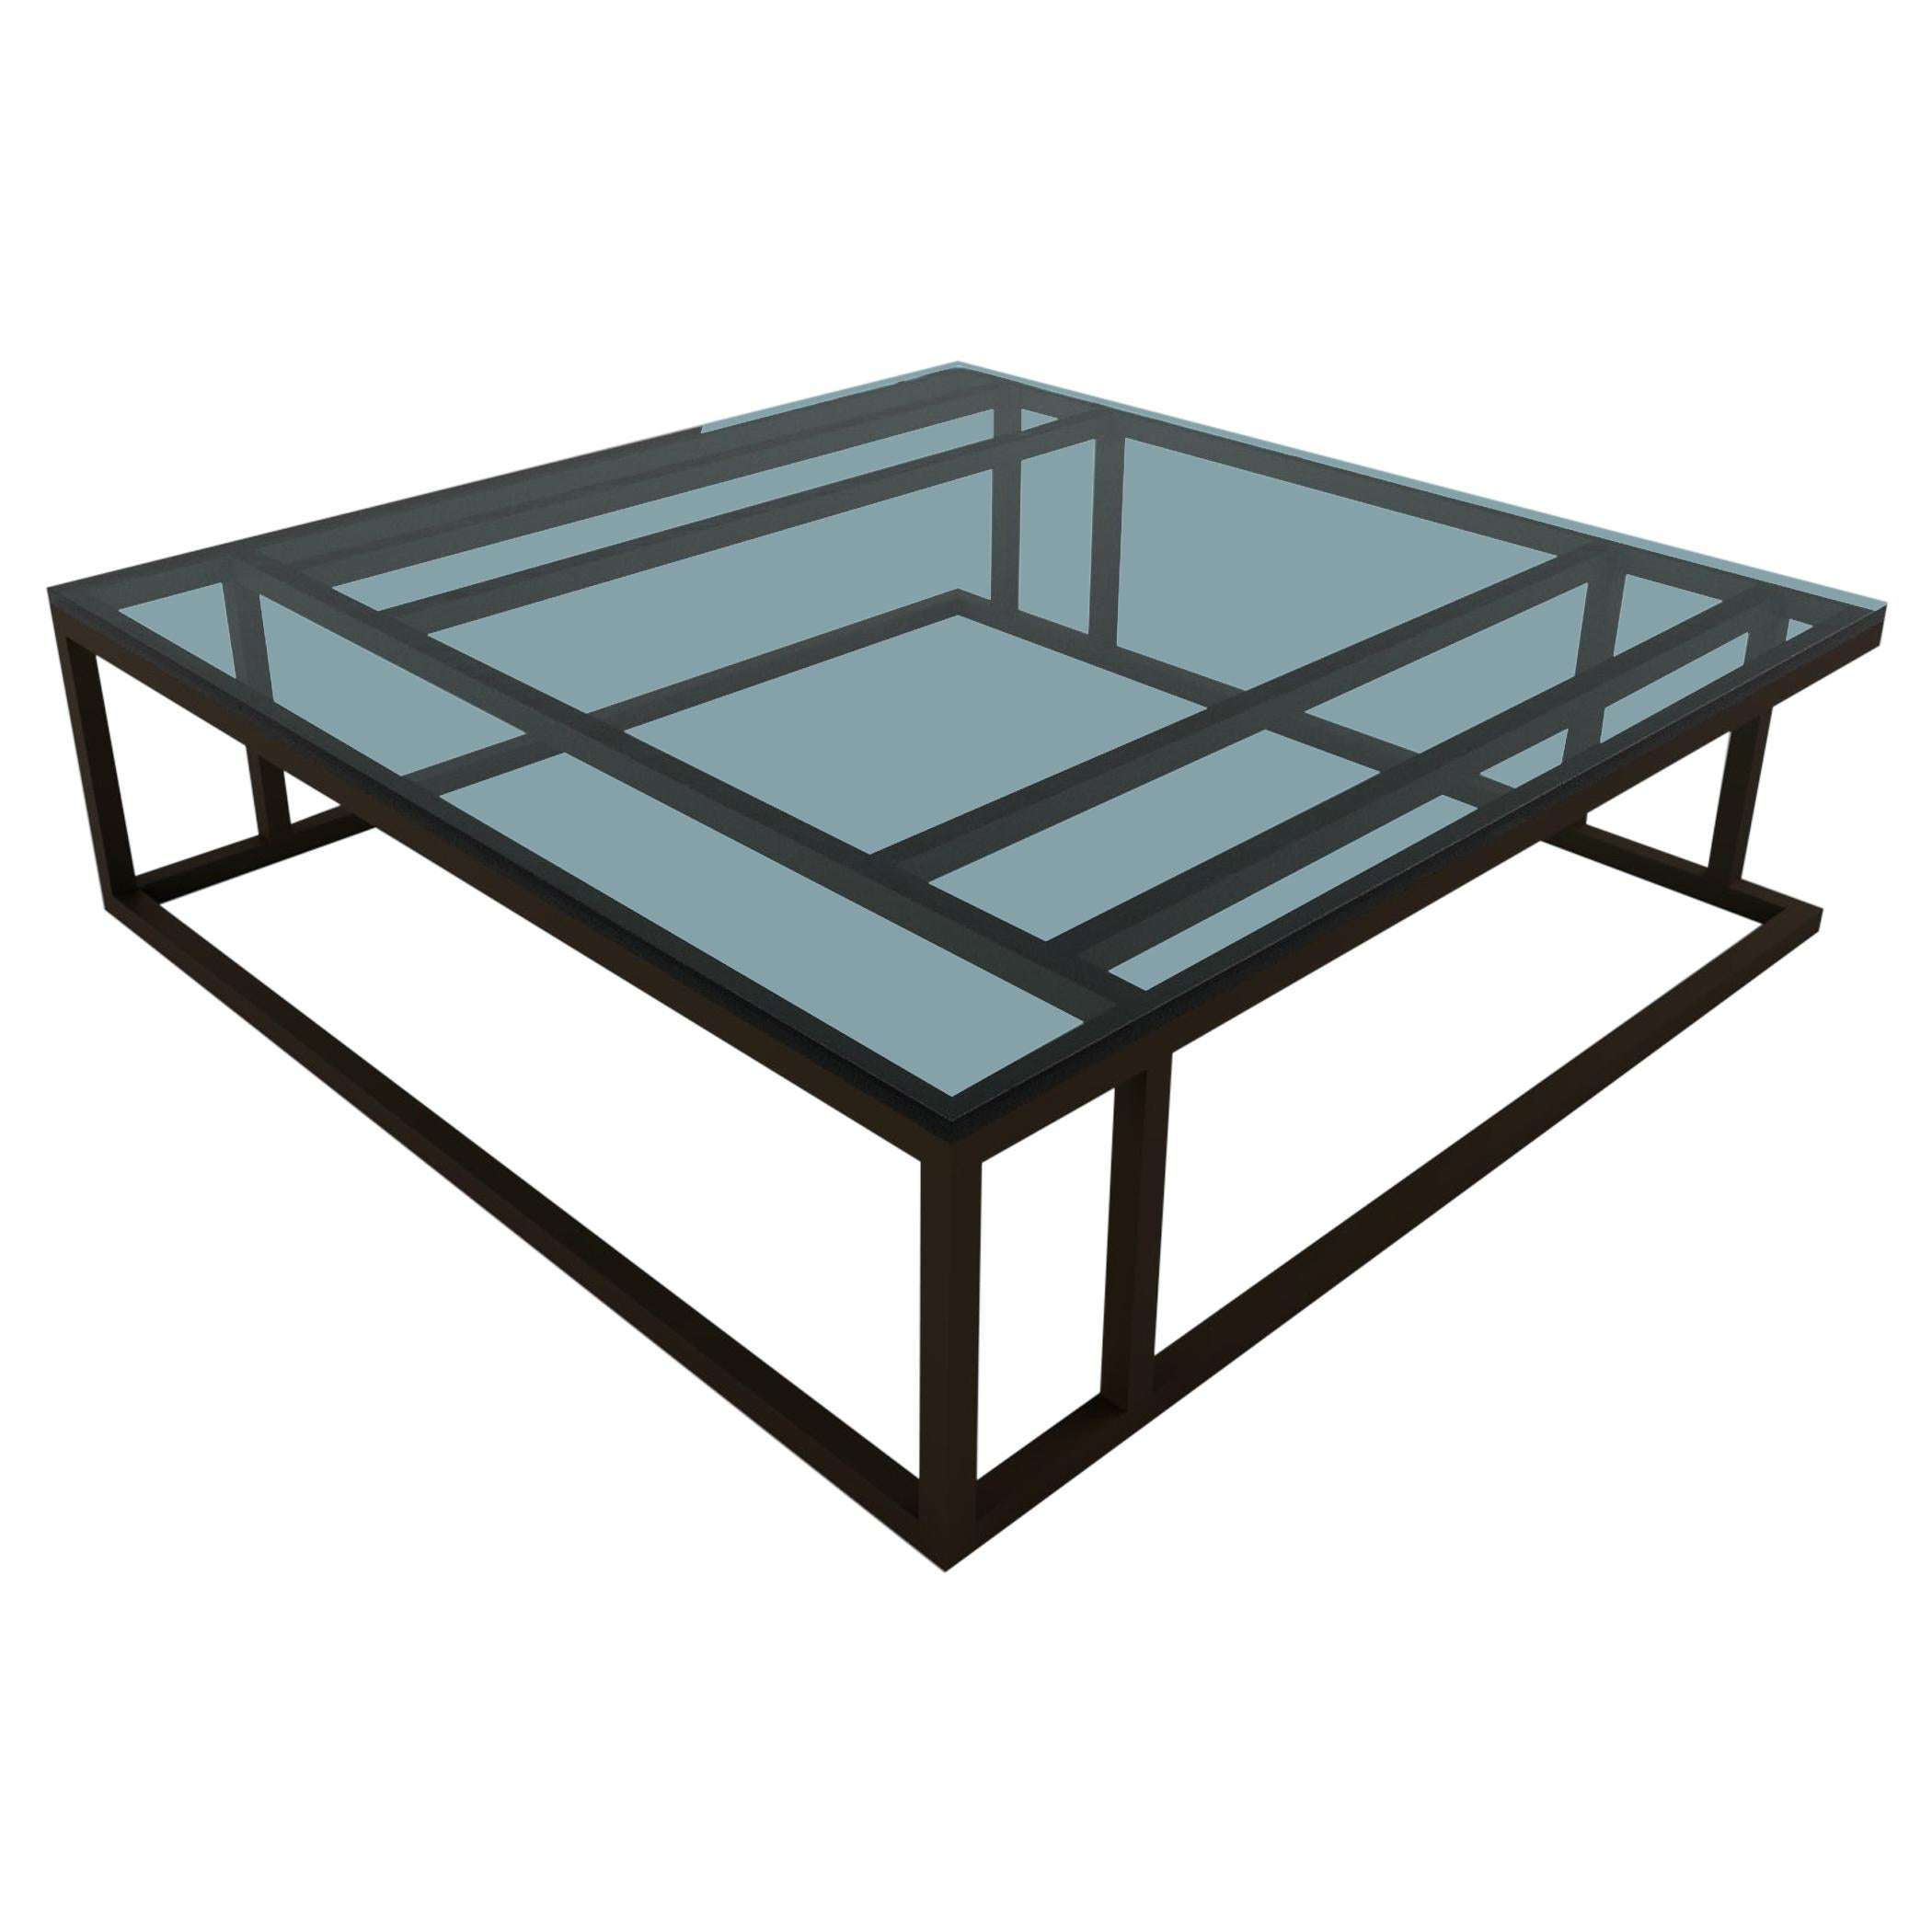 Art Deco Inspired Elio Coffee Table Large Powder-Coated and Glass Surface